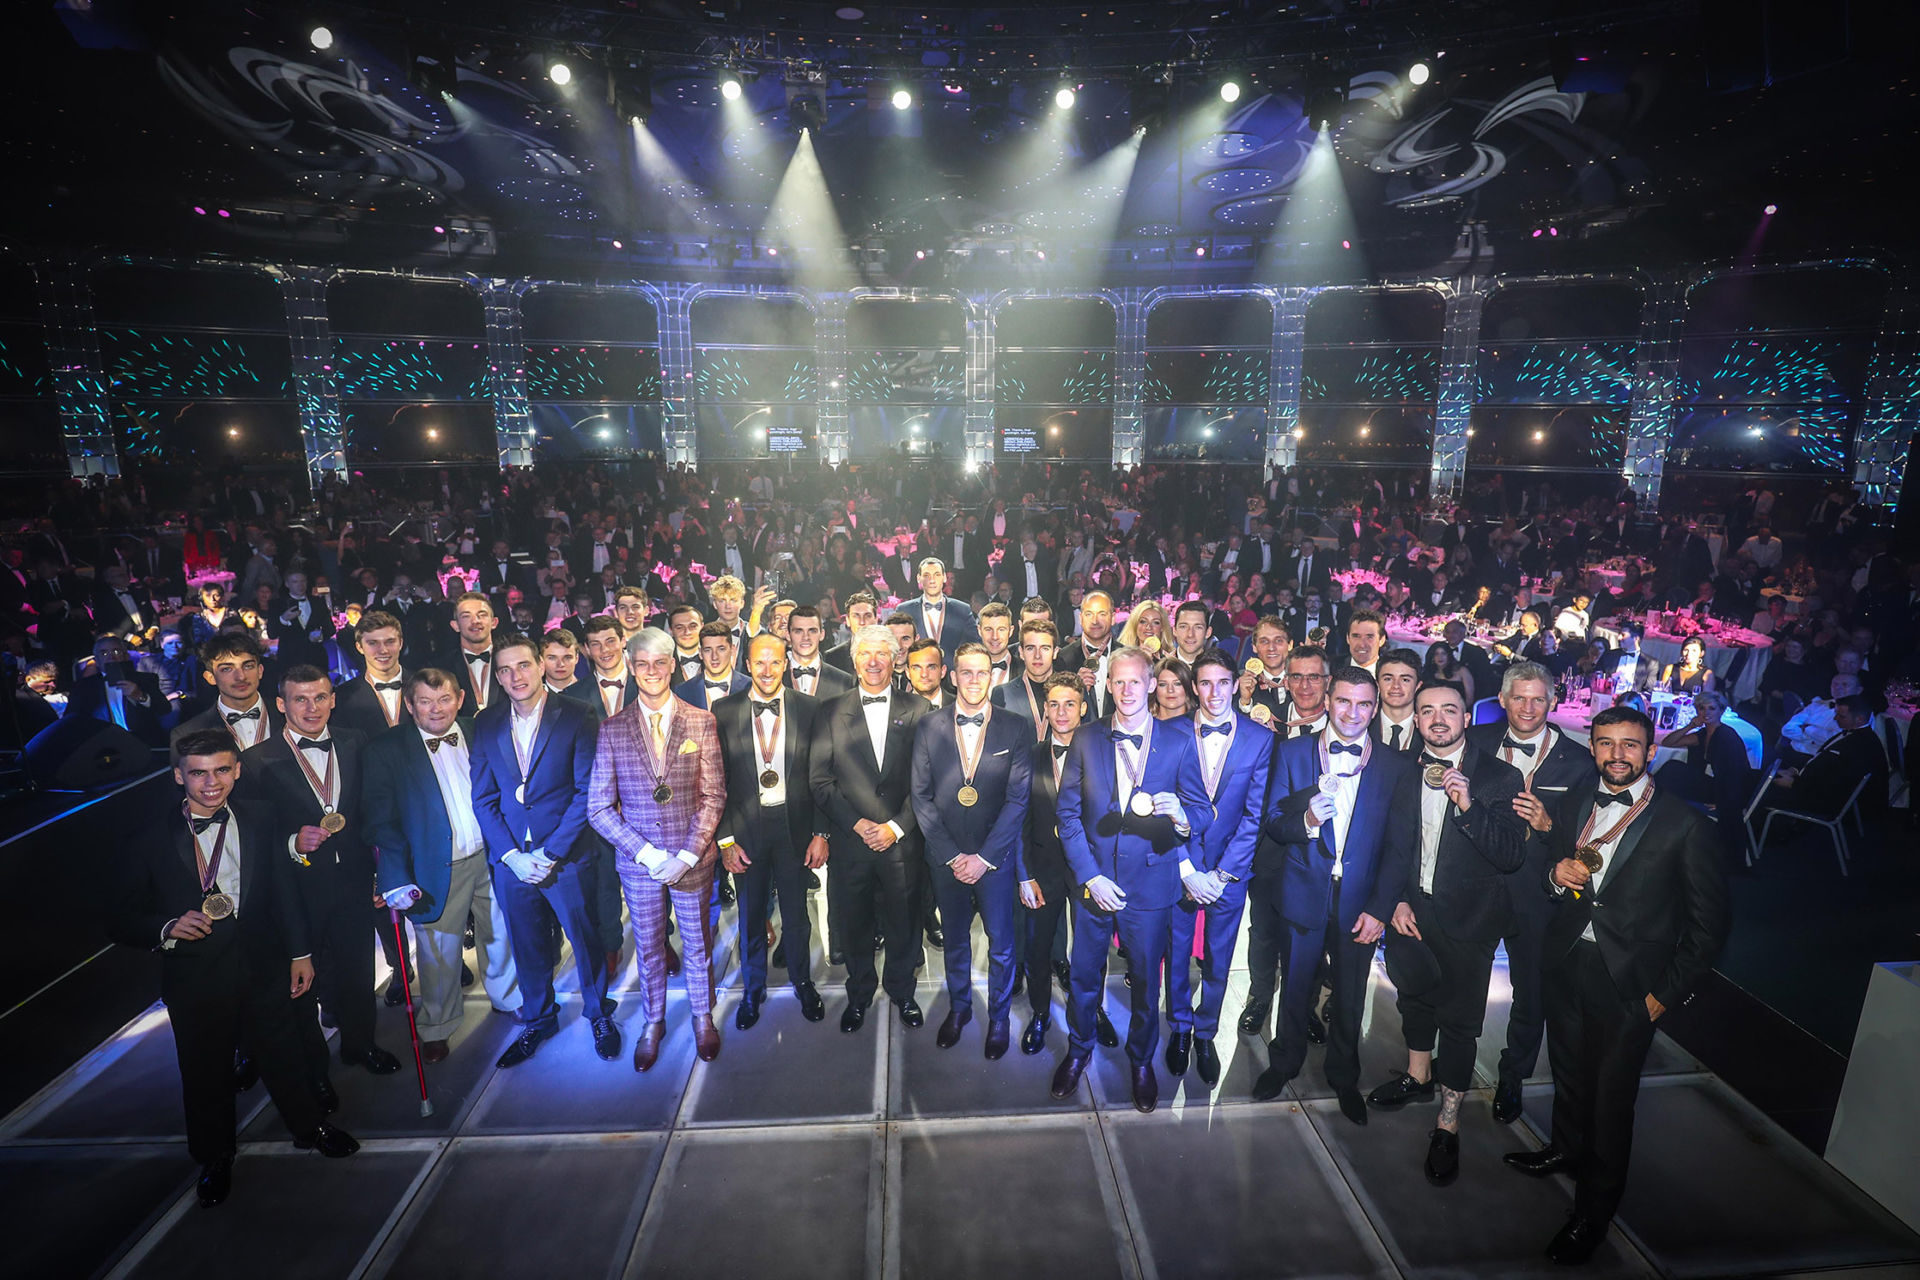 Award winners on stage at the 2019 FIM Awards Gala in Monaco. Photo by www.good-shoot.com/Reygondeau, courtesy of FIM.